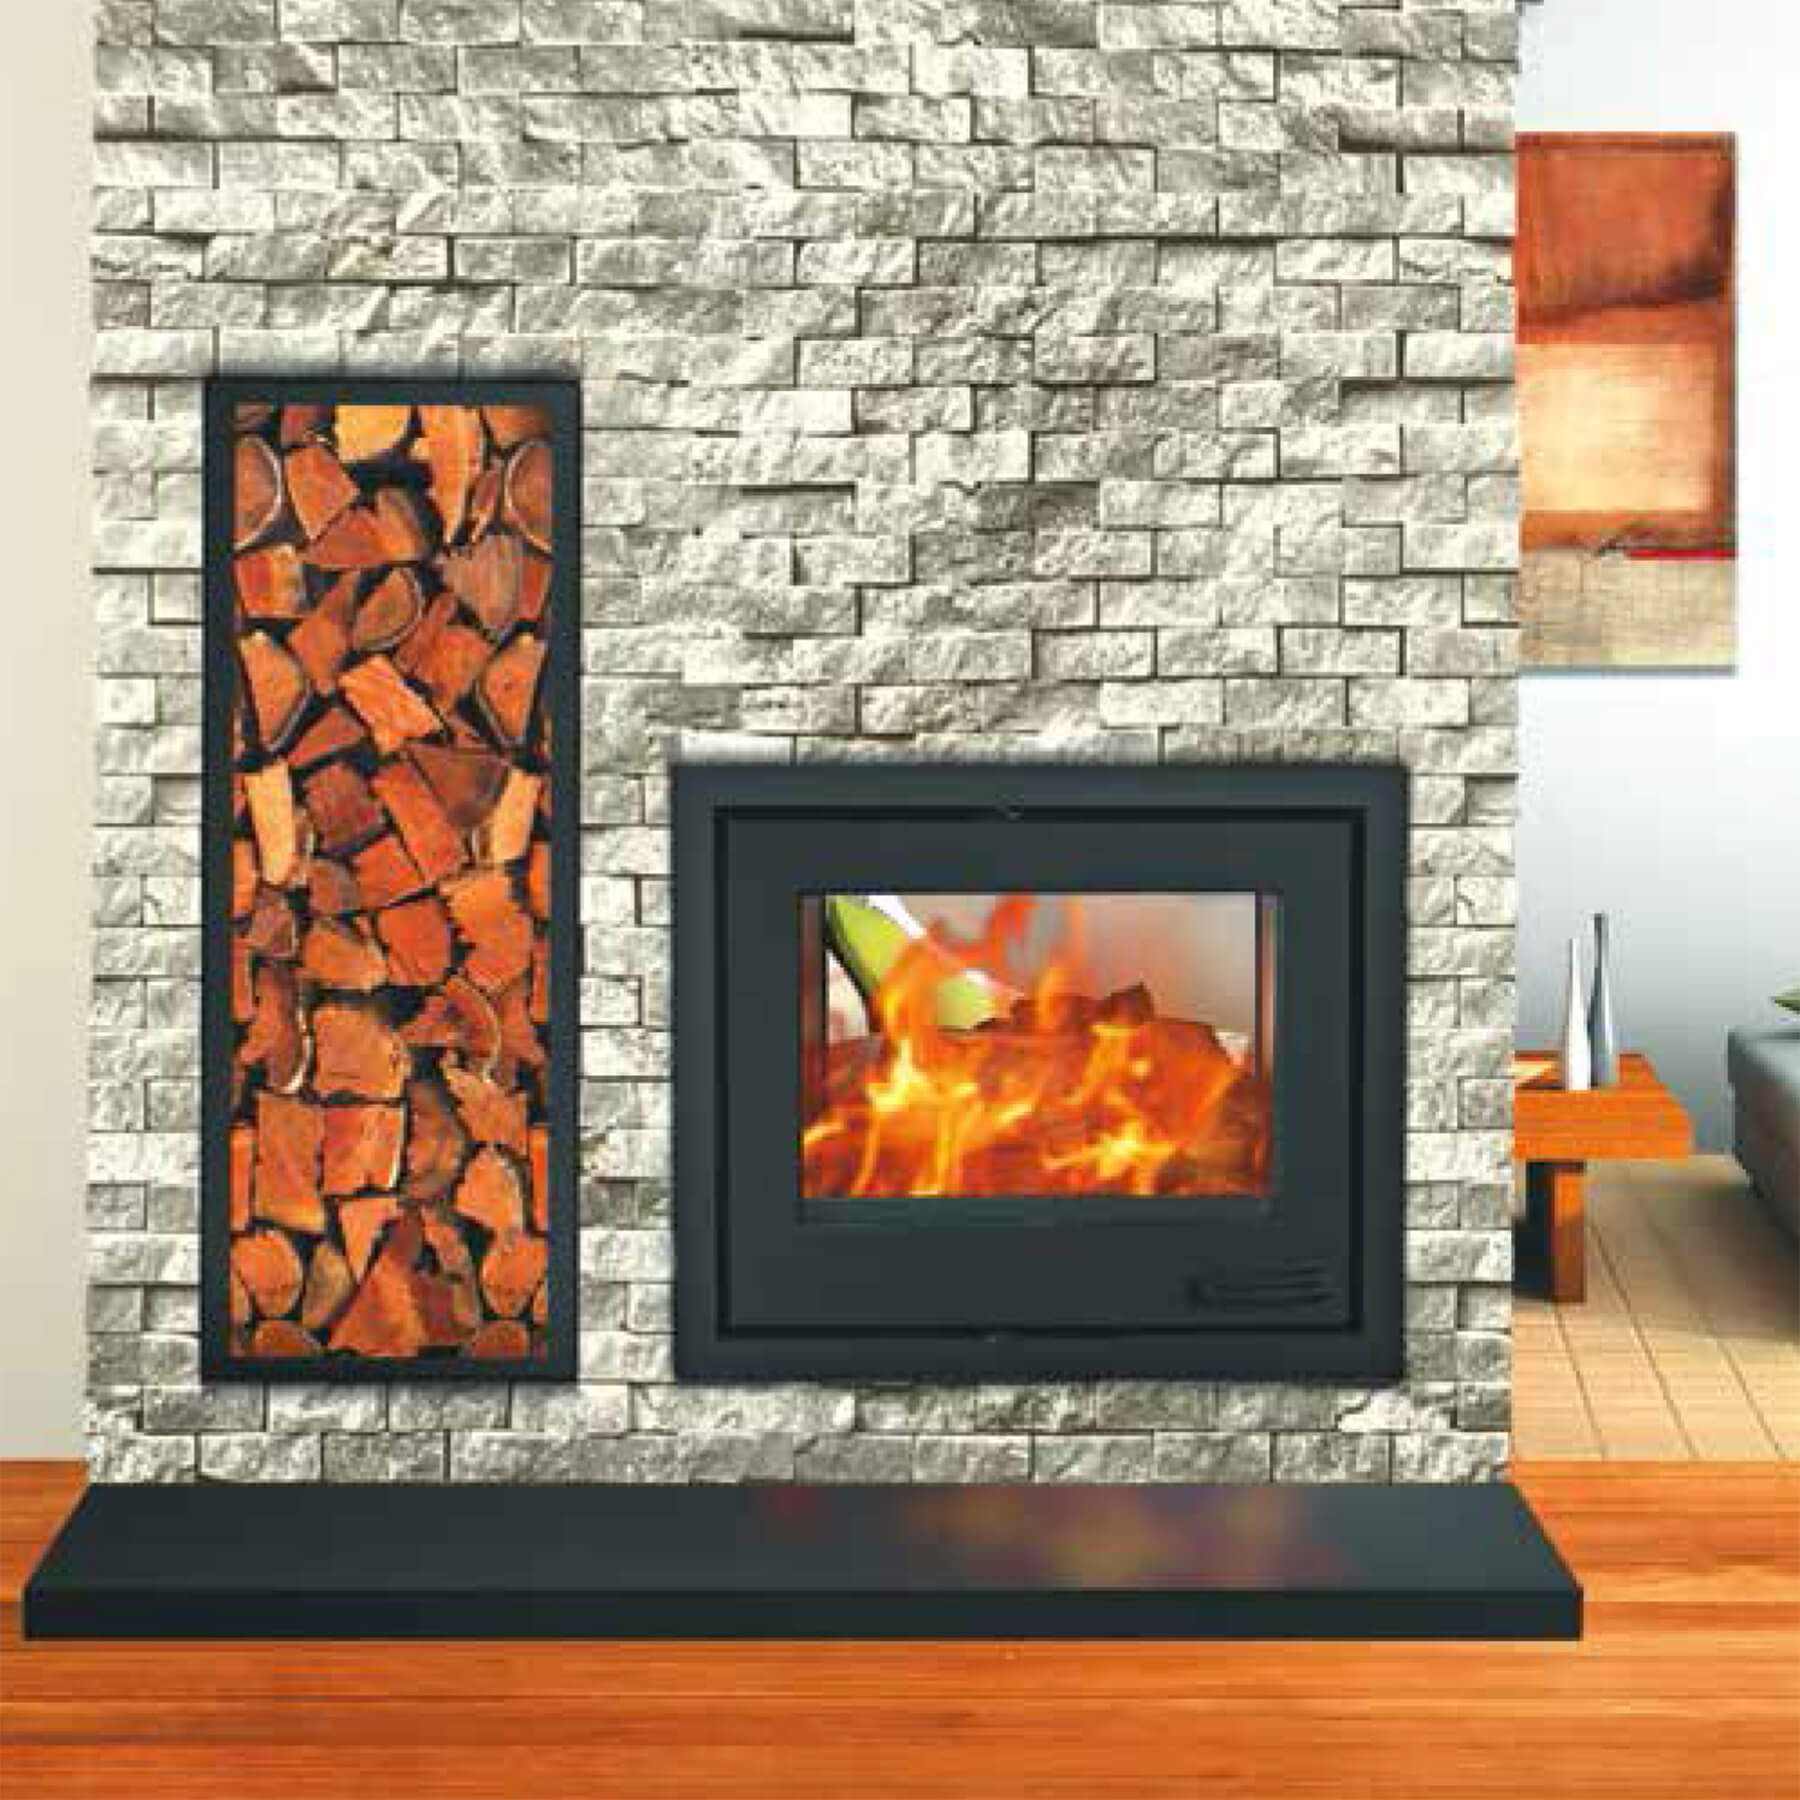 Combustion-Fireplaces-Built-In-14kw-Double-Sided-Insert-Convection-Unit-Environment